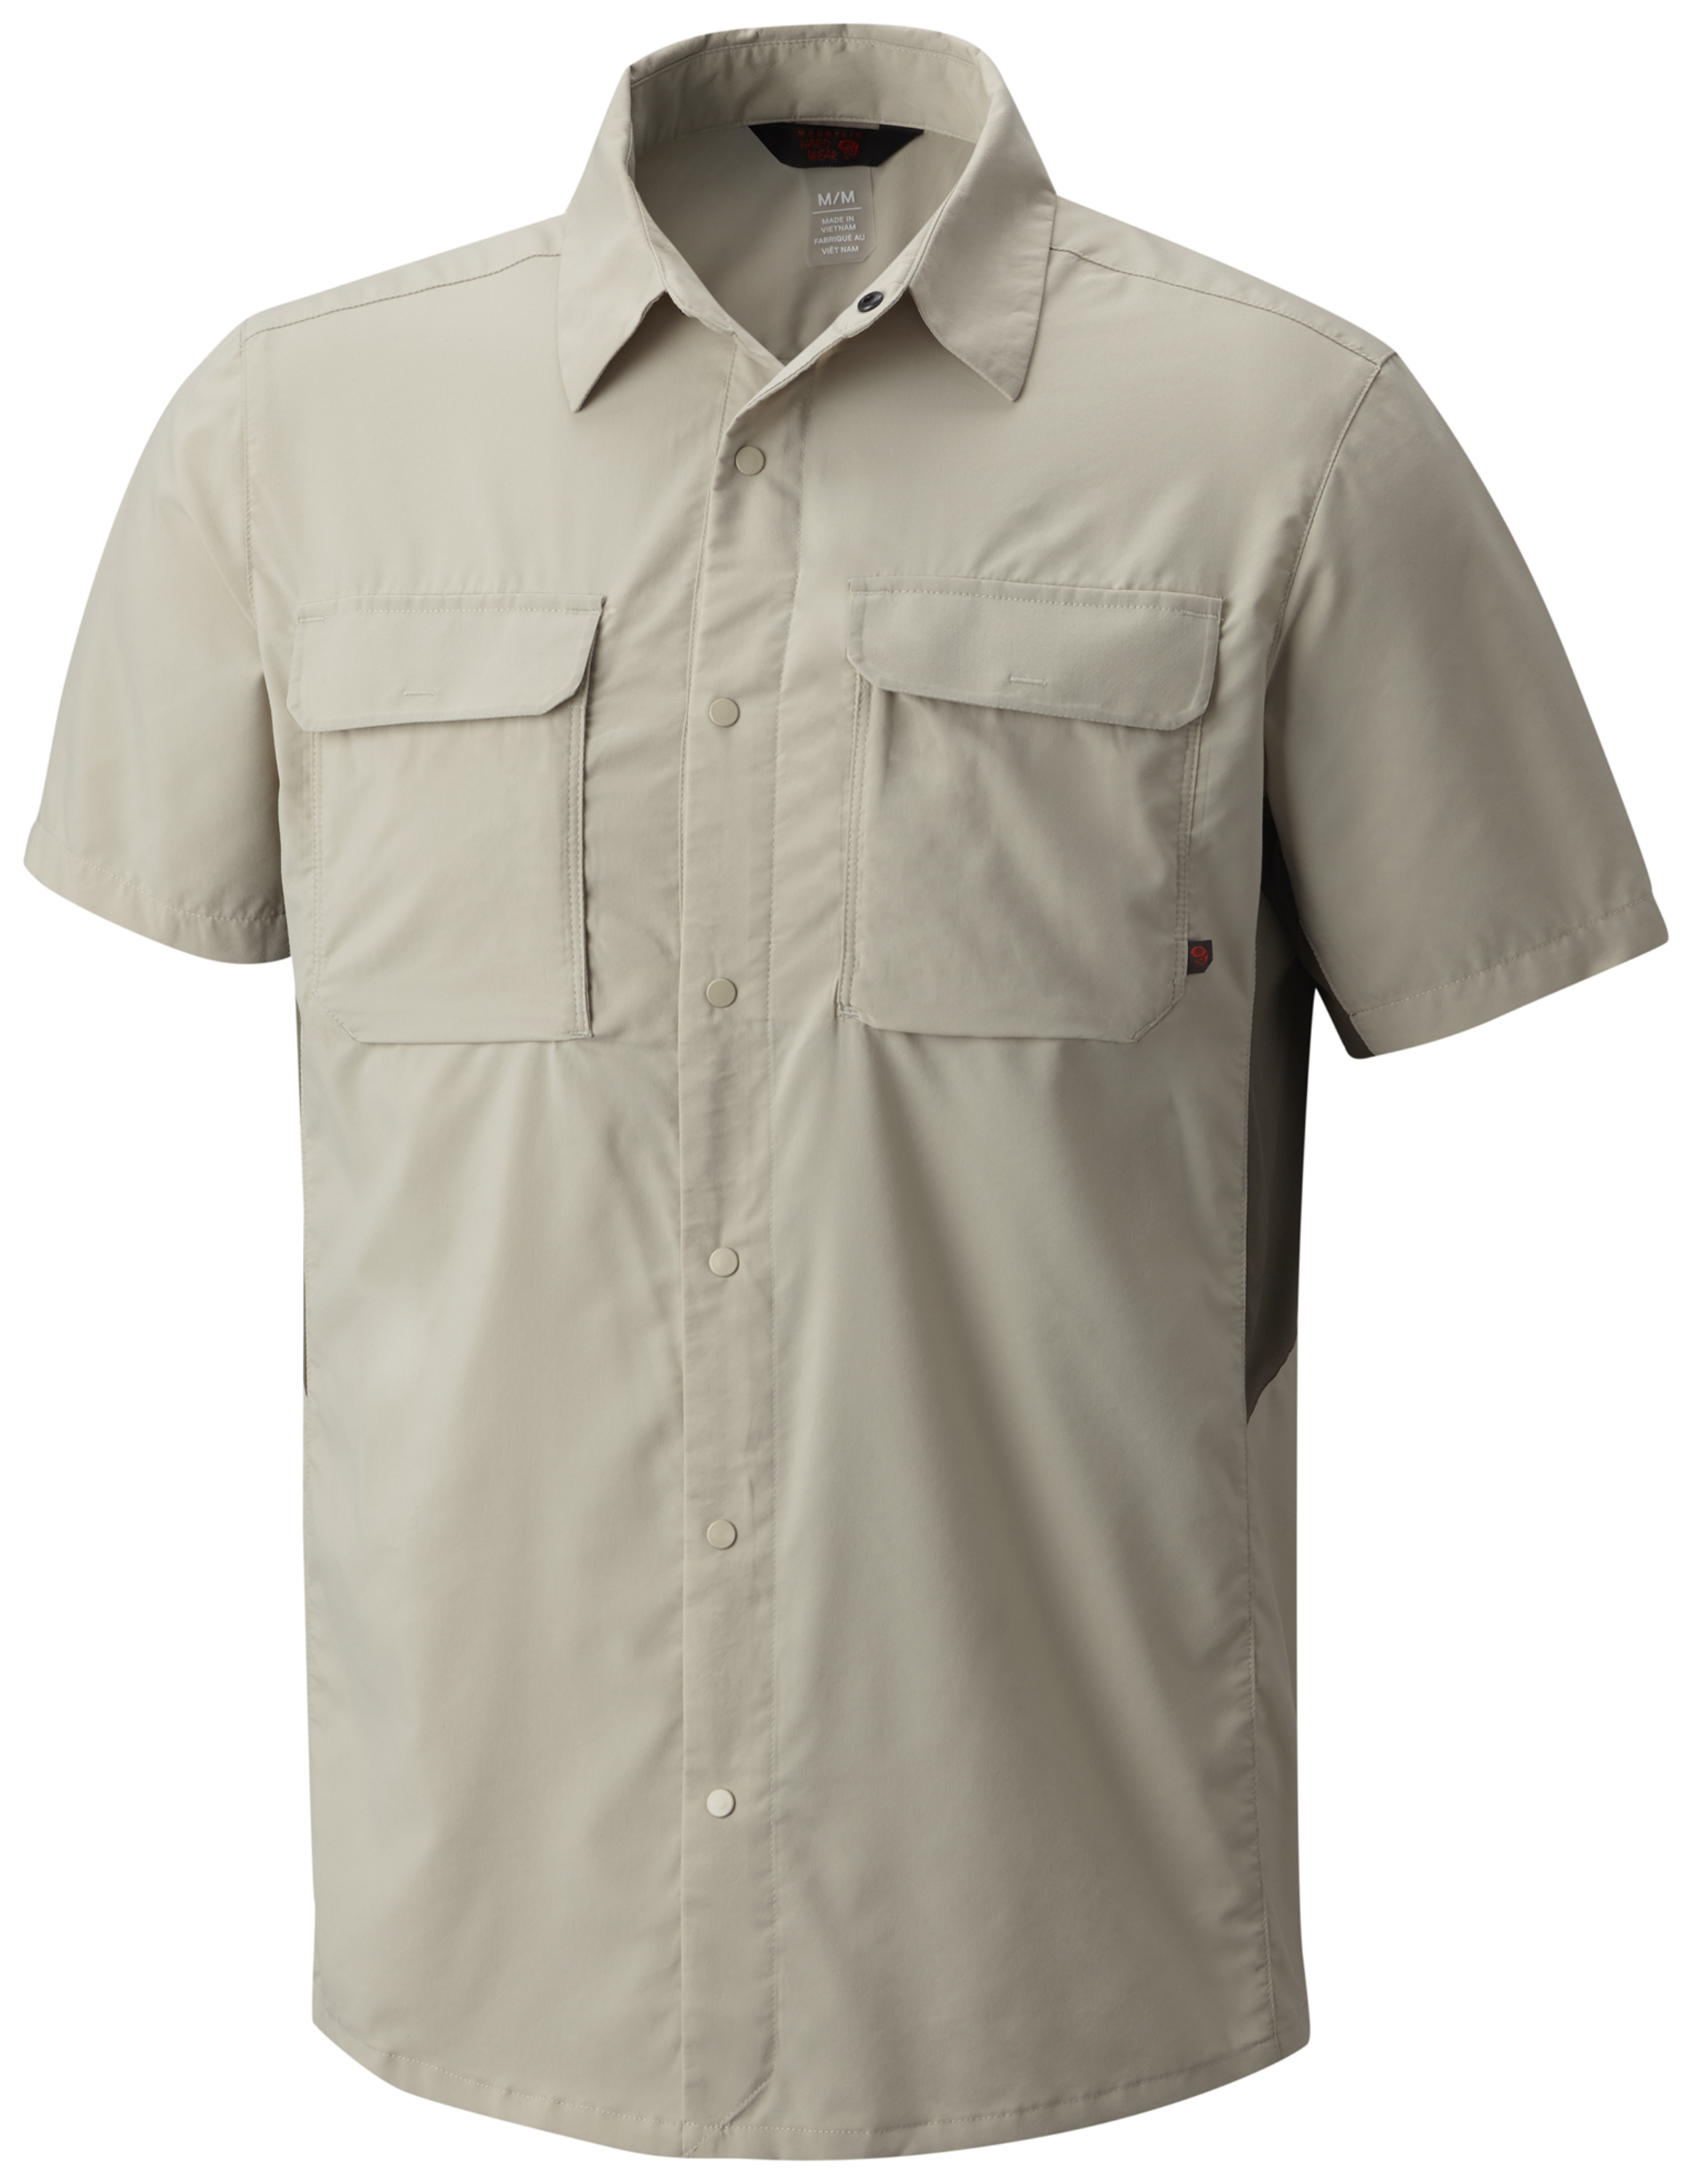 Mountain Hardwear Canyon Pro™ Short Sleeve Shirt | Jerseys